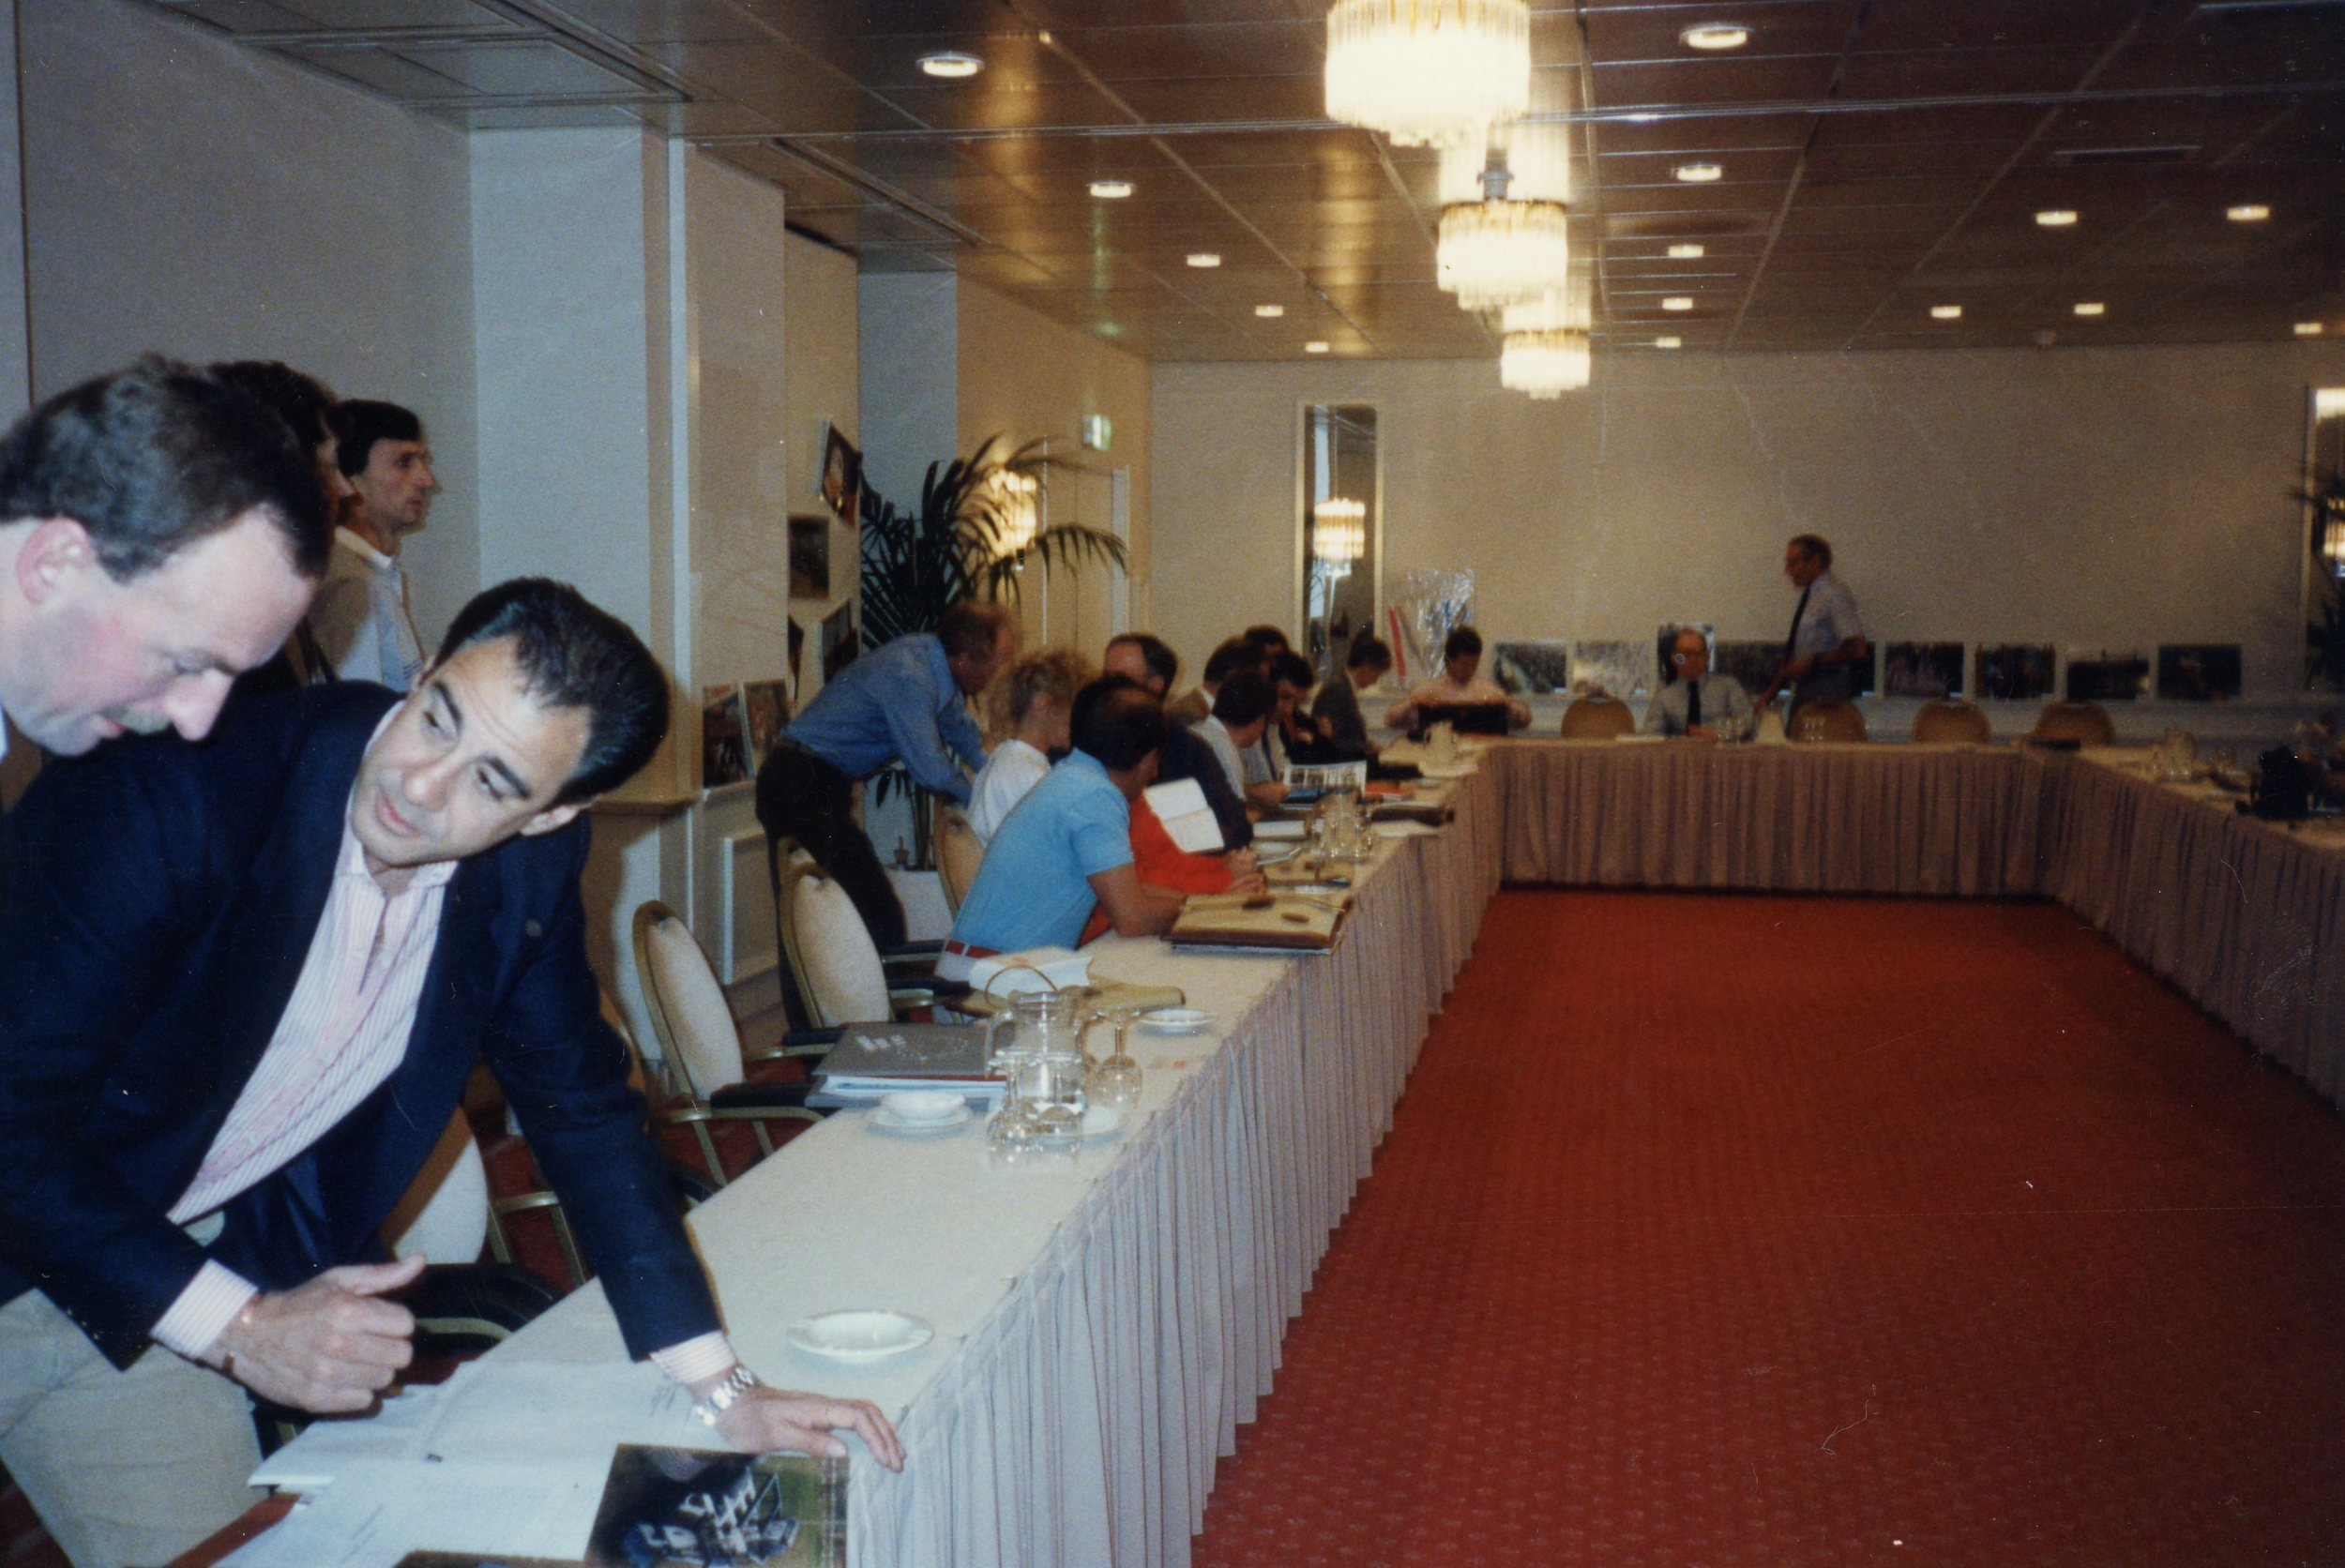 Delegates at the conference. Shown second from left is the Chilean delegate.